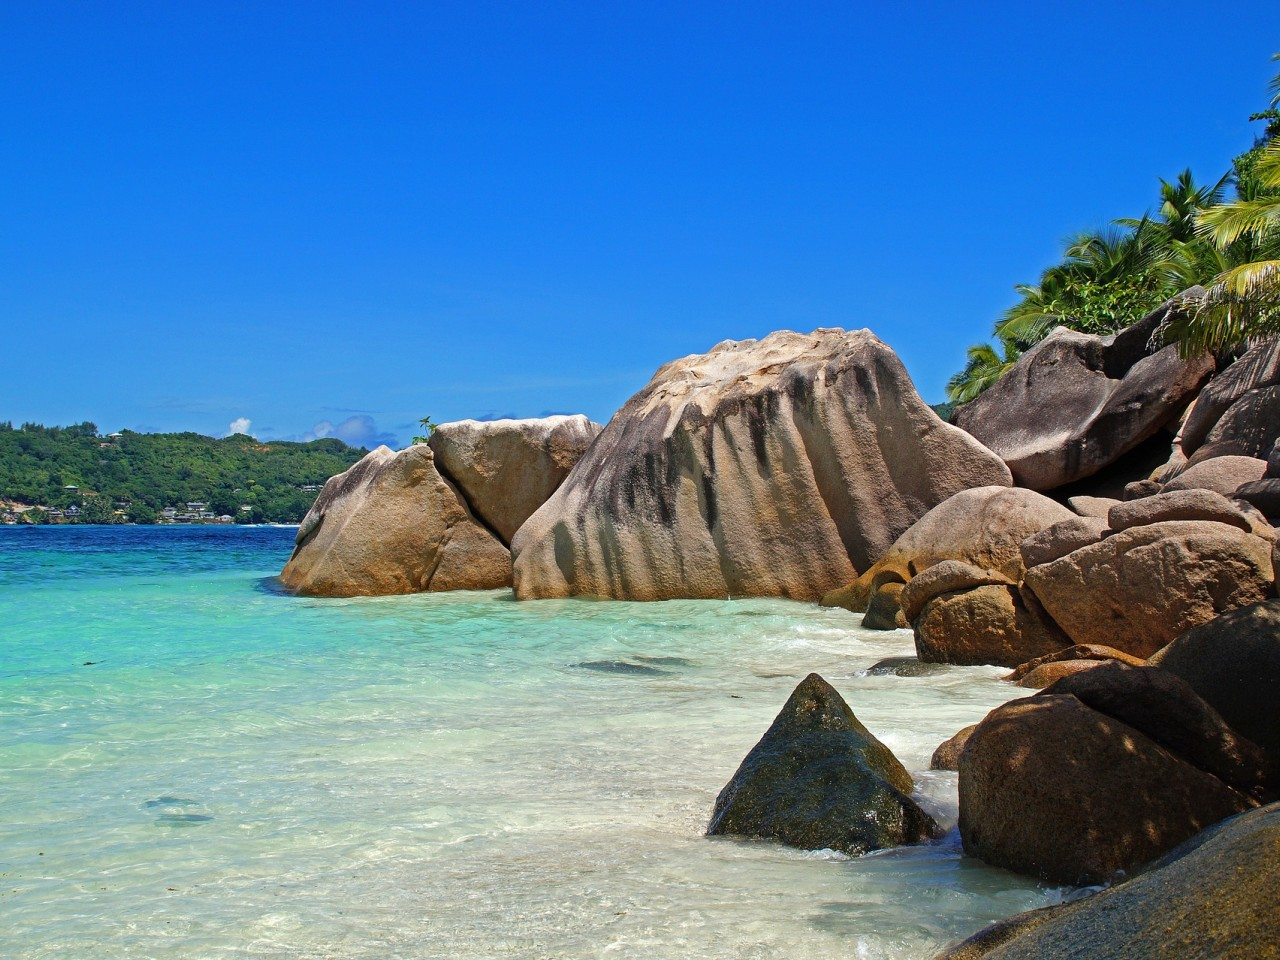 TRIS DI ISOLE A SEYCHELLES CON SHADOW TRAVEL